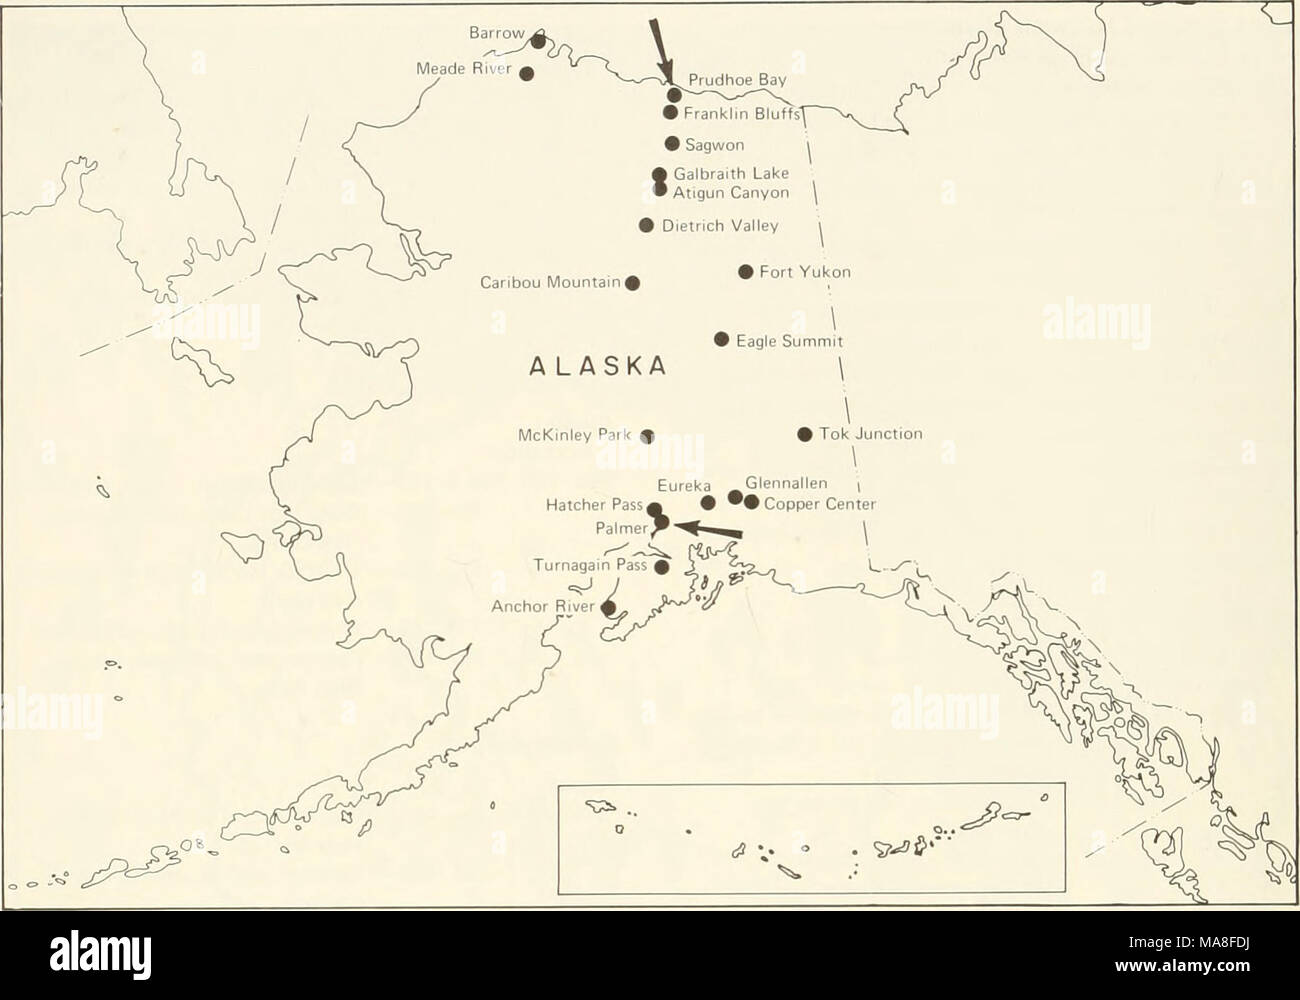 Prudhoe Bay Alaska Map.Ecological Investigations Of The Tundra Biome In The Prudhoe Bay